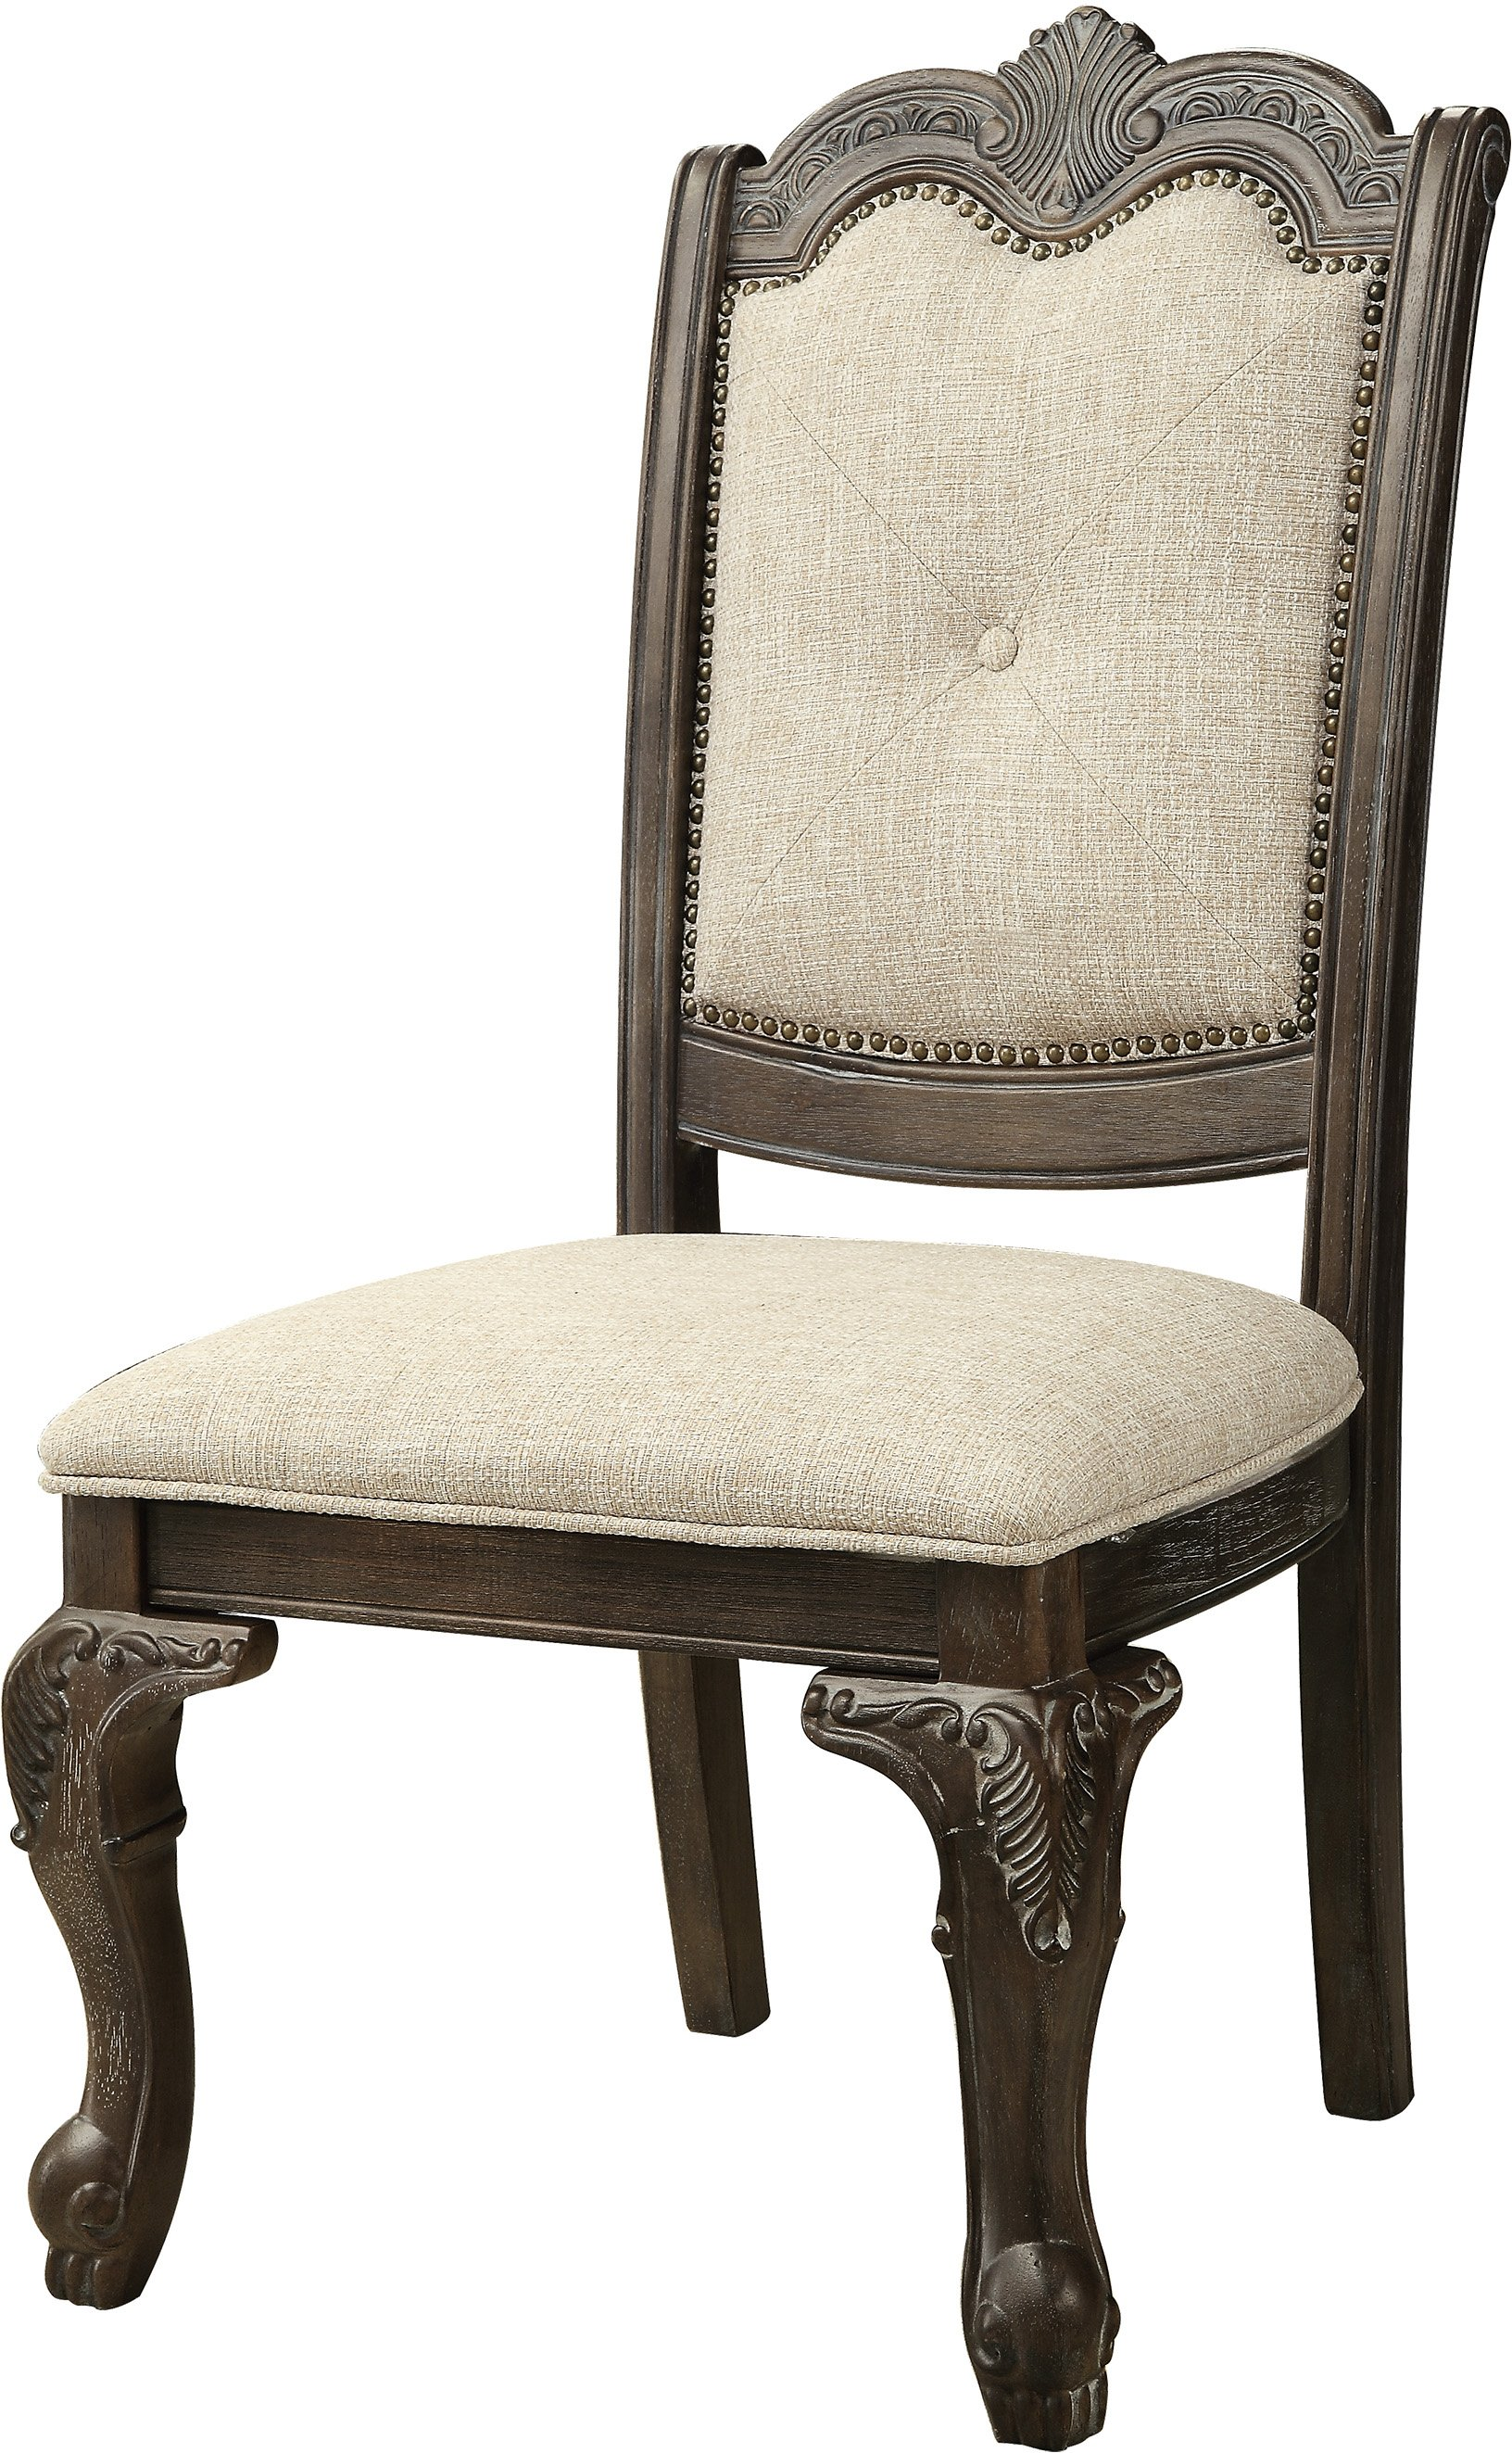 Washed Gray And Beige Upholstered Dining Chair   Kiera Collection